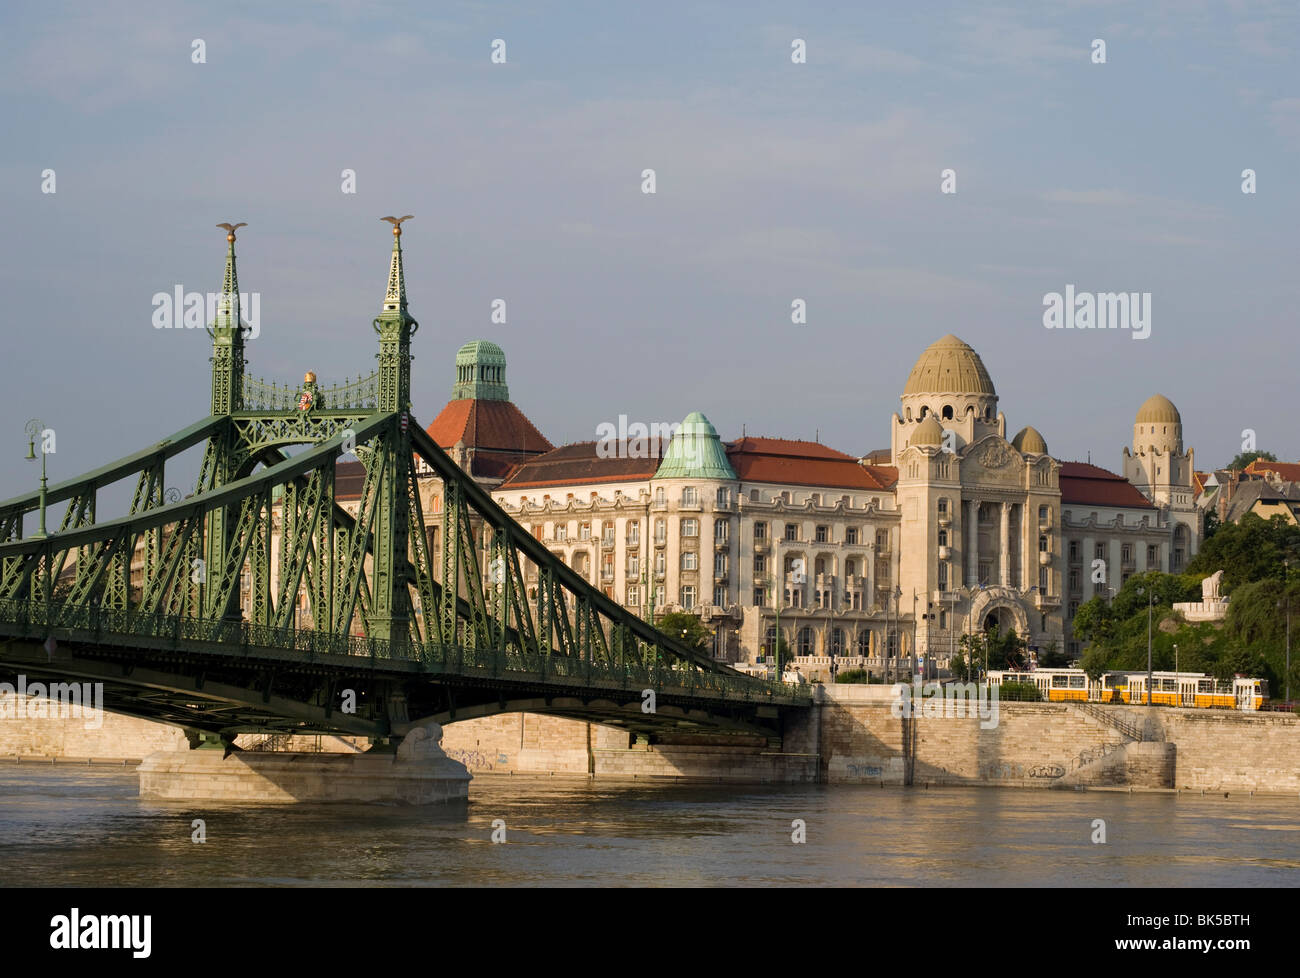 Liberty Bridge and the Gellert Hotel on the Danube River, Budapest, Hungary, Europe - Stock Image